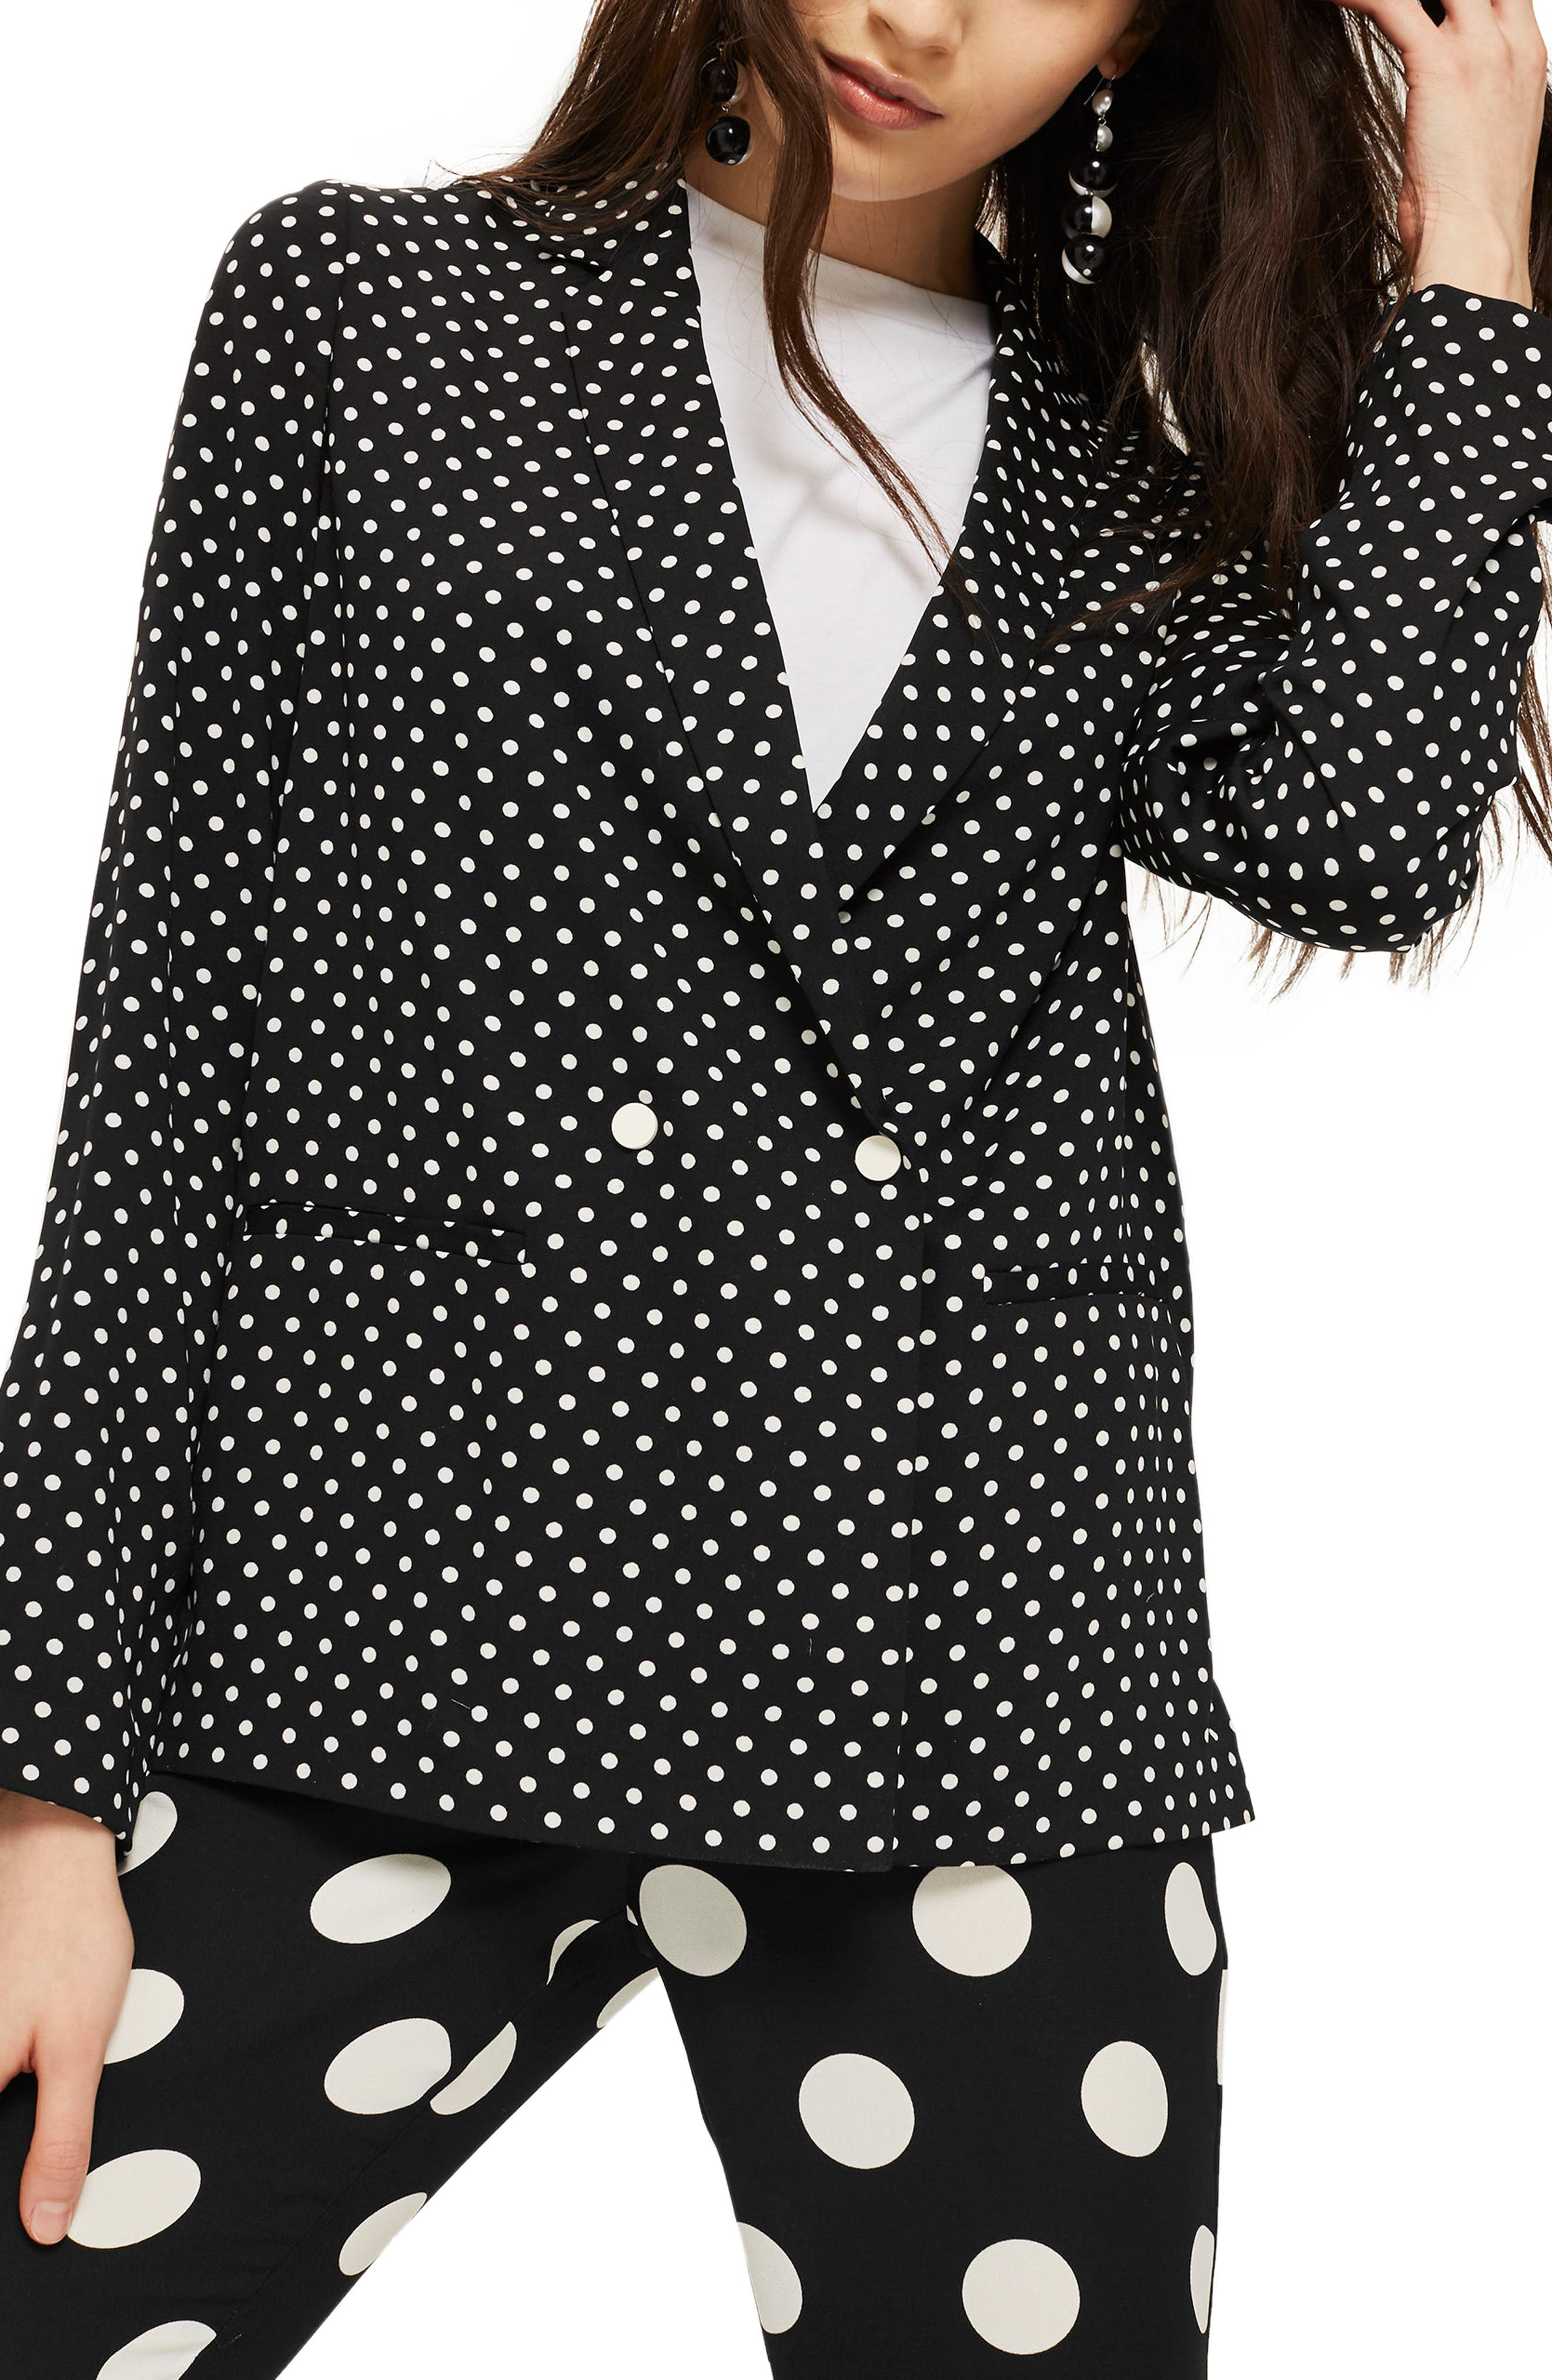 Ava Double Breasted Jacket,                         Main,                         color, Black Multi